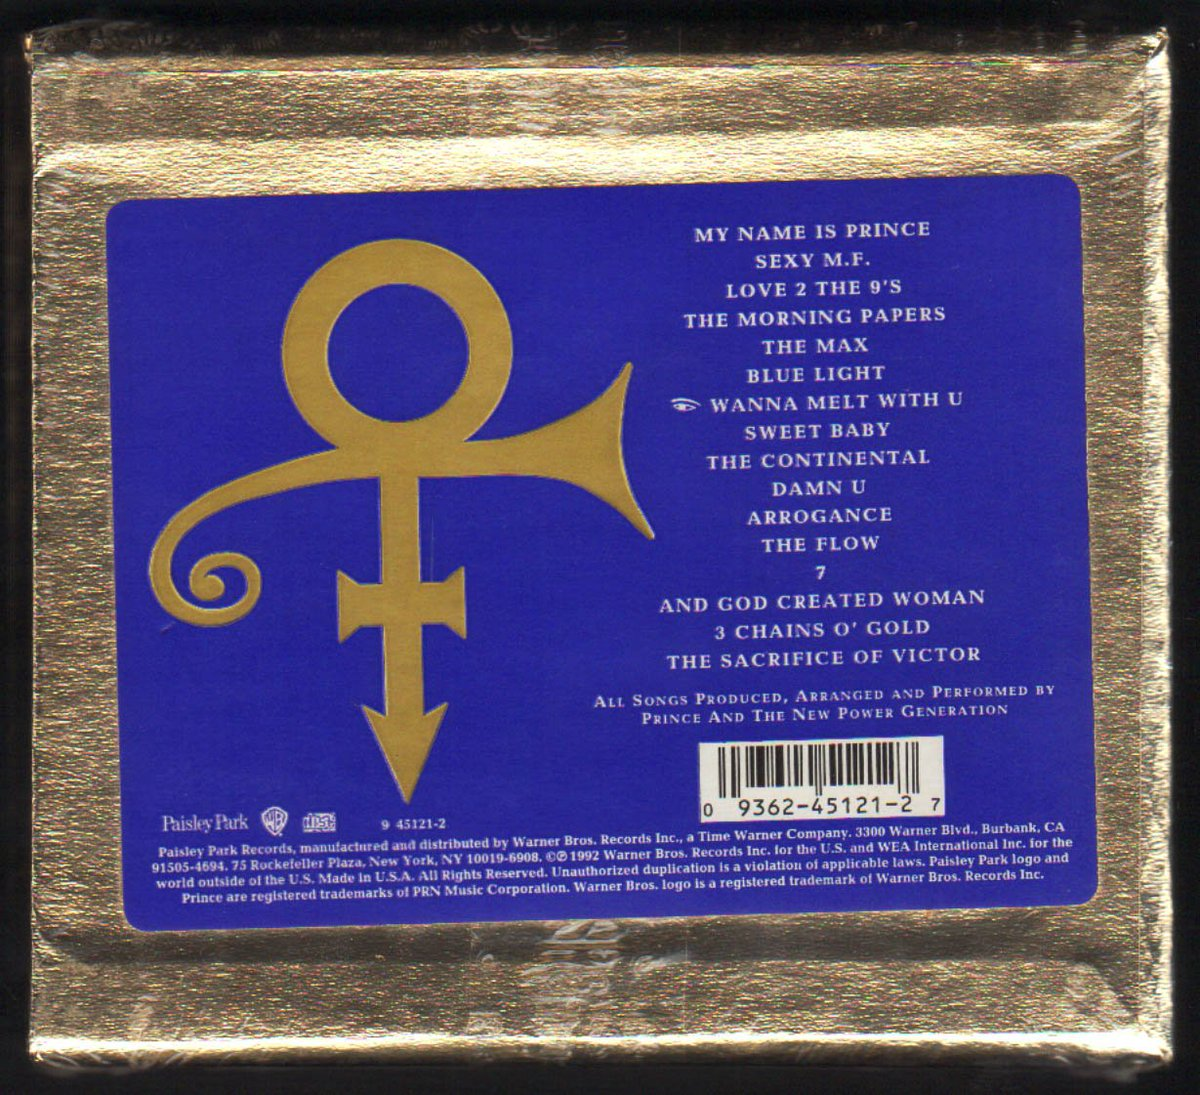 Forkster music promo on twitter onthisday oct 13th 1992 prince releases love symbol album prince legend rip ripprince rock funk purplerain rnb soul httpstktsogcul6f biocorpaavc